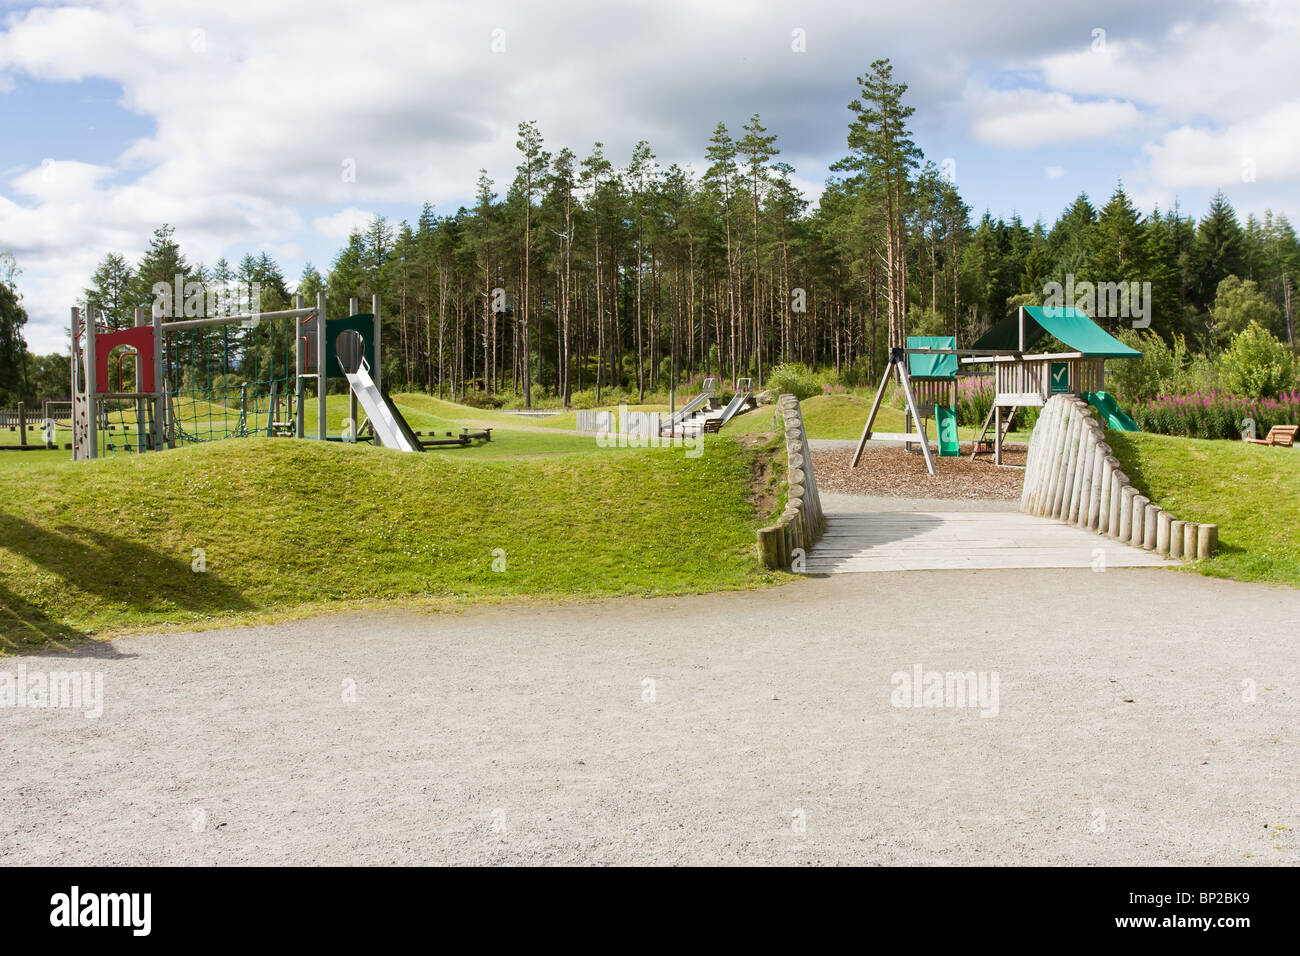 Falls of Shin visitor centre children's play area by the river shin near Lairg in the Scottish Highlands. - Stock Image